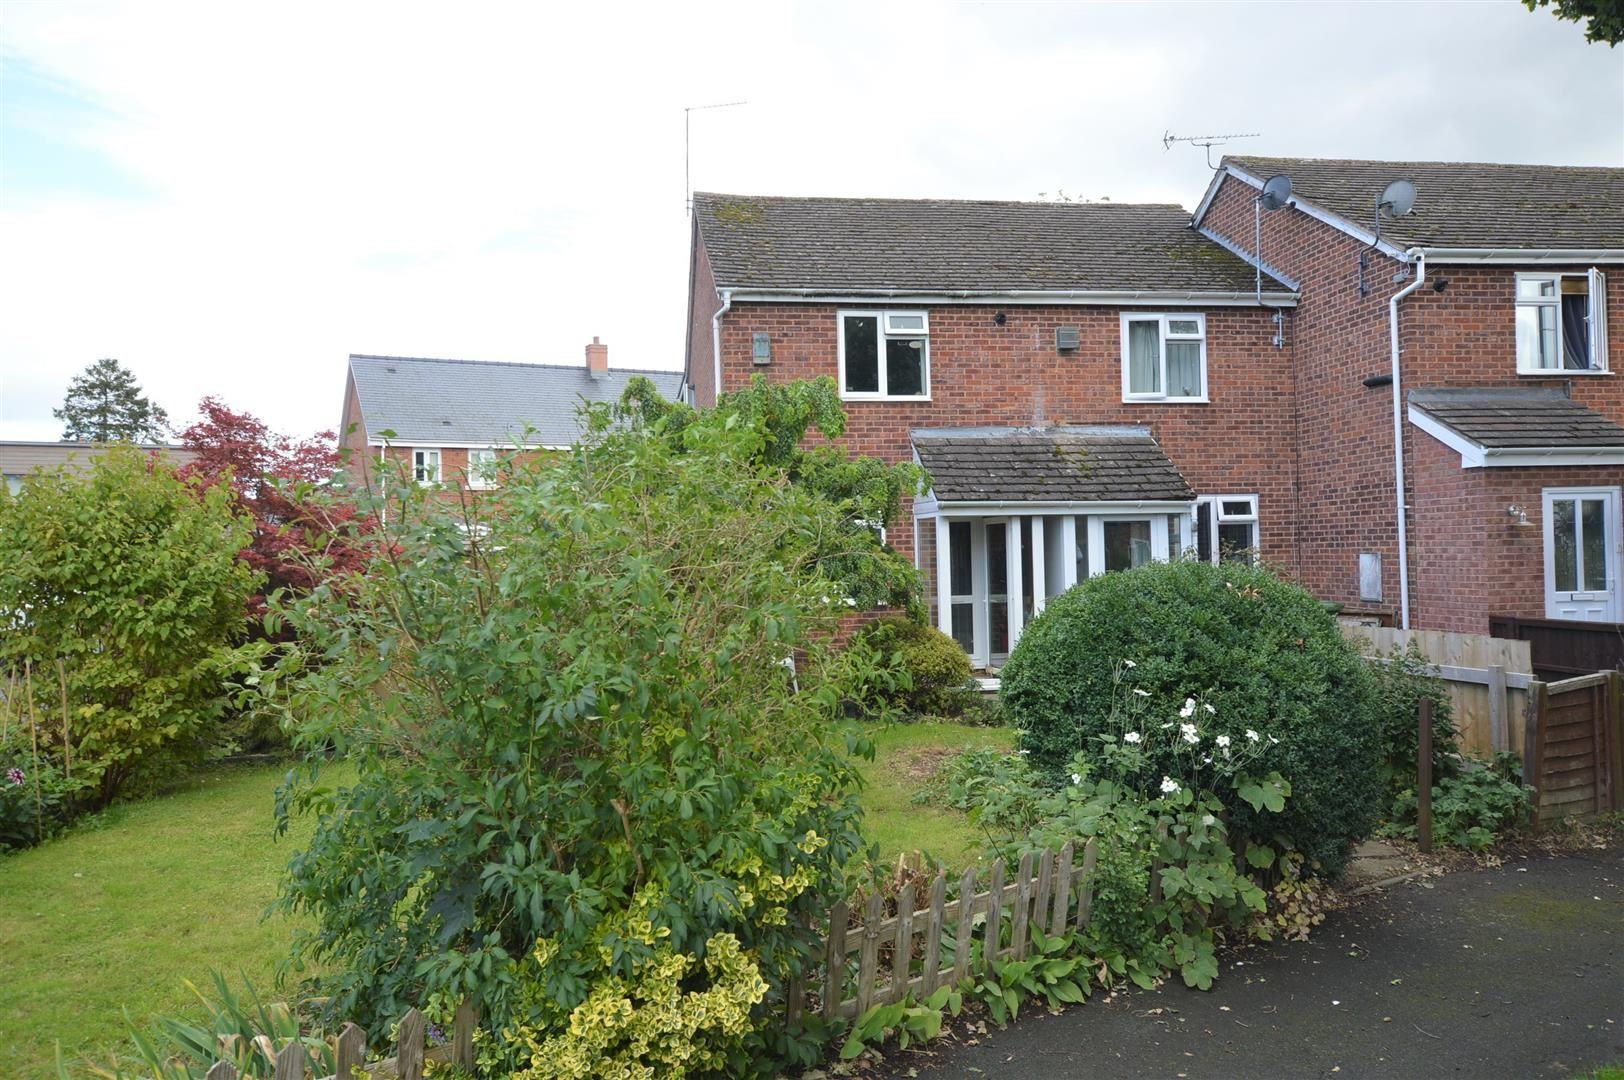 2 bed end-of-terrace for sale in Leominster 1